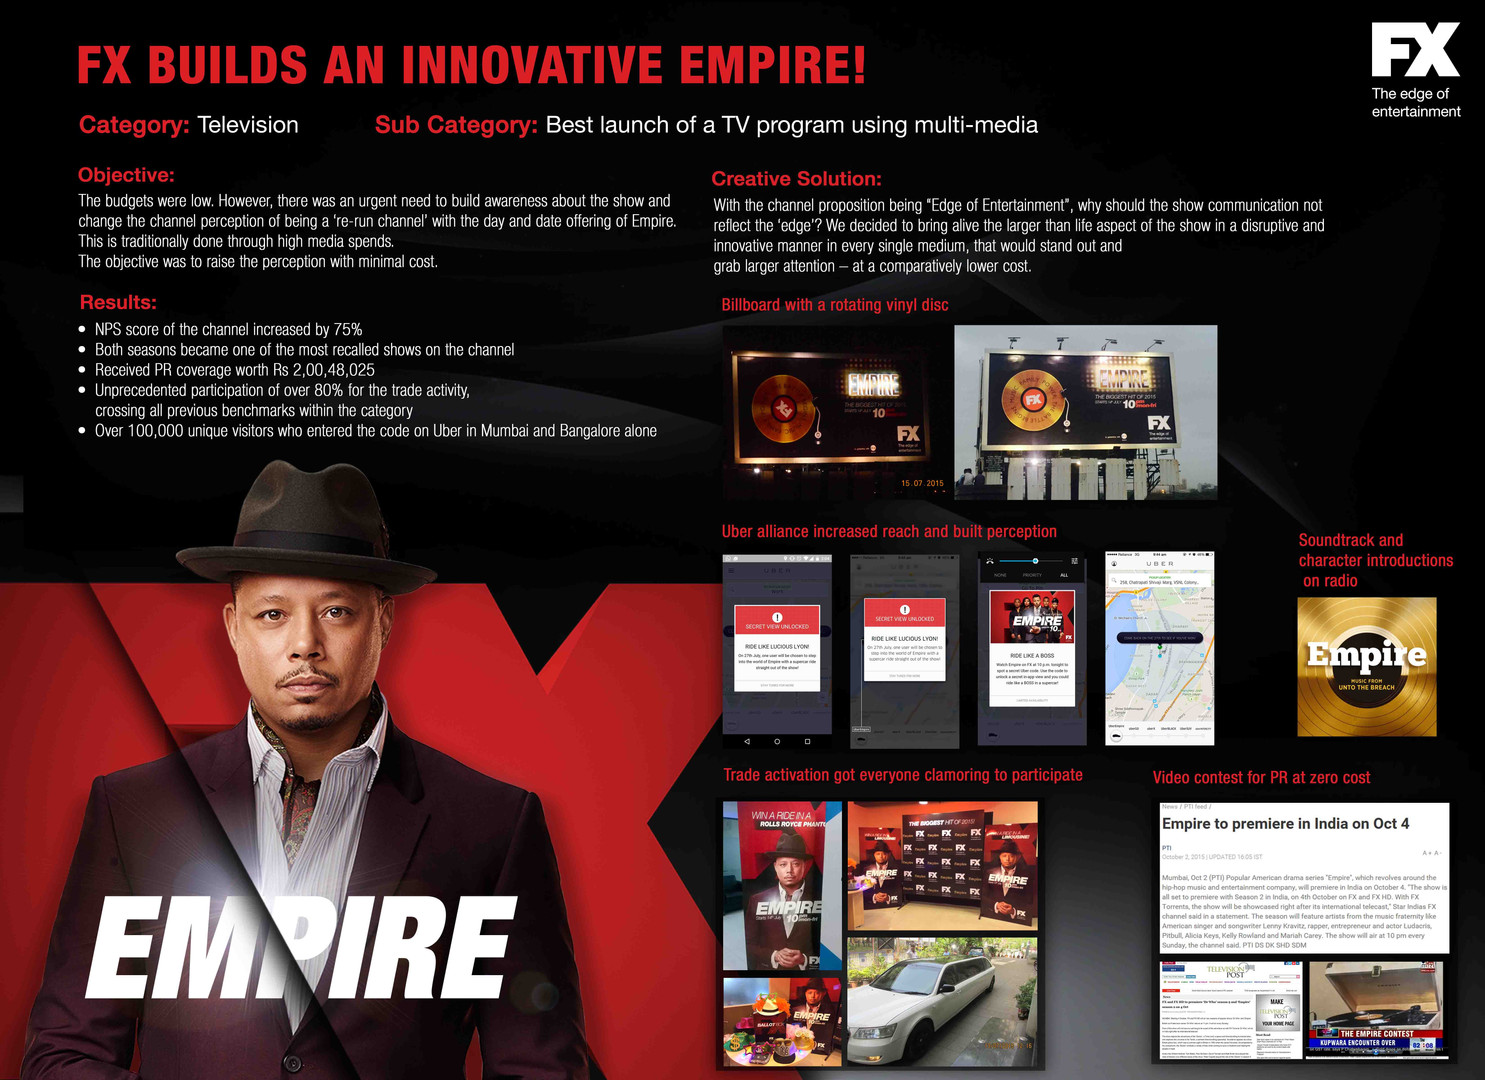 FX Empire launch